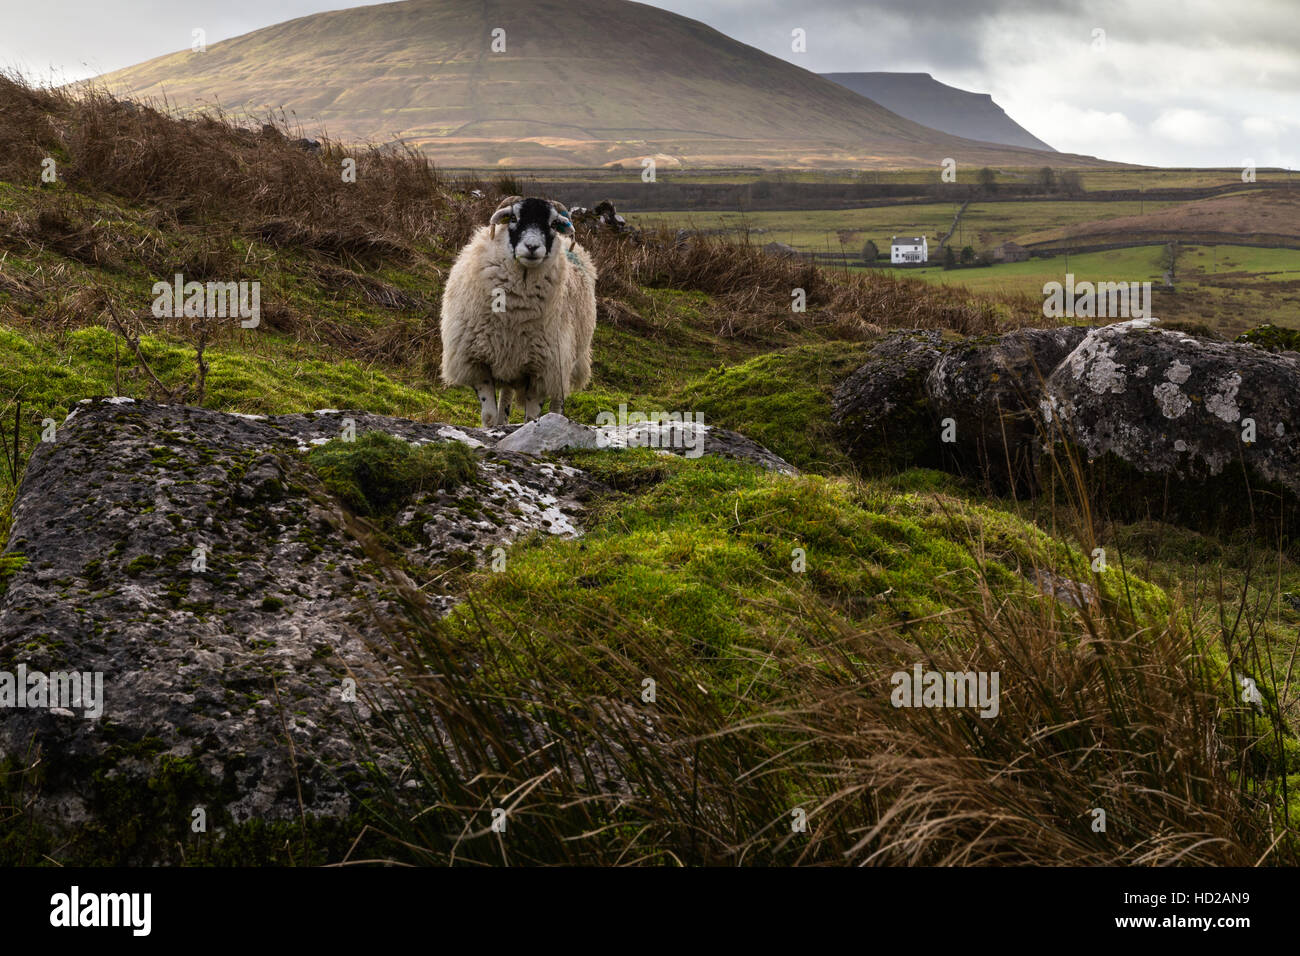 A sheep poses for its photo with Park Fell and Ingleborough beyond in the Yorkshire Dales Three Peaks, Ribblesdale, - Stock Image